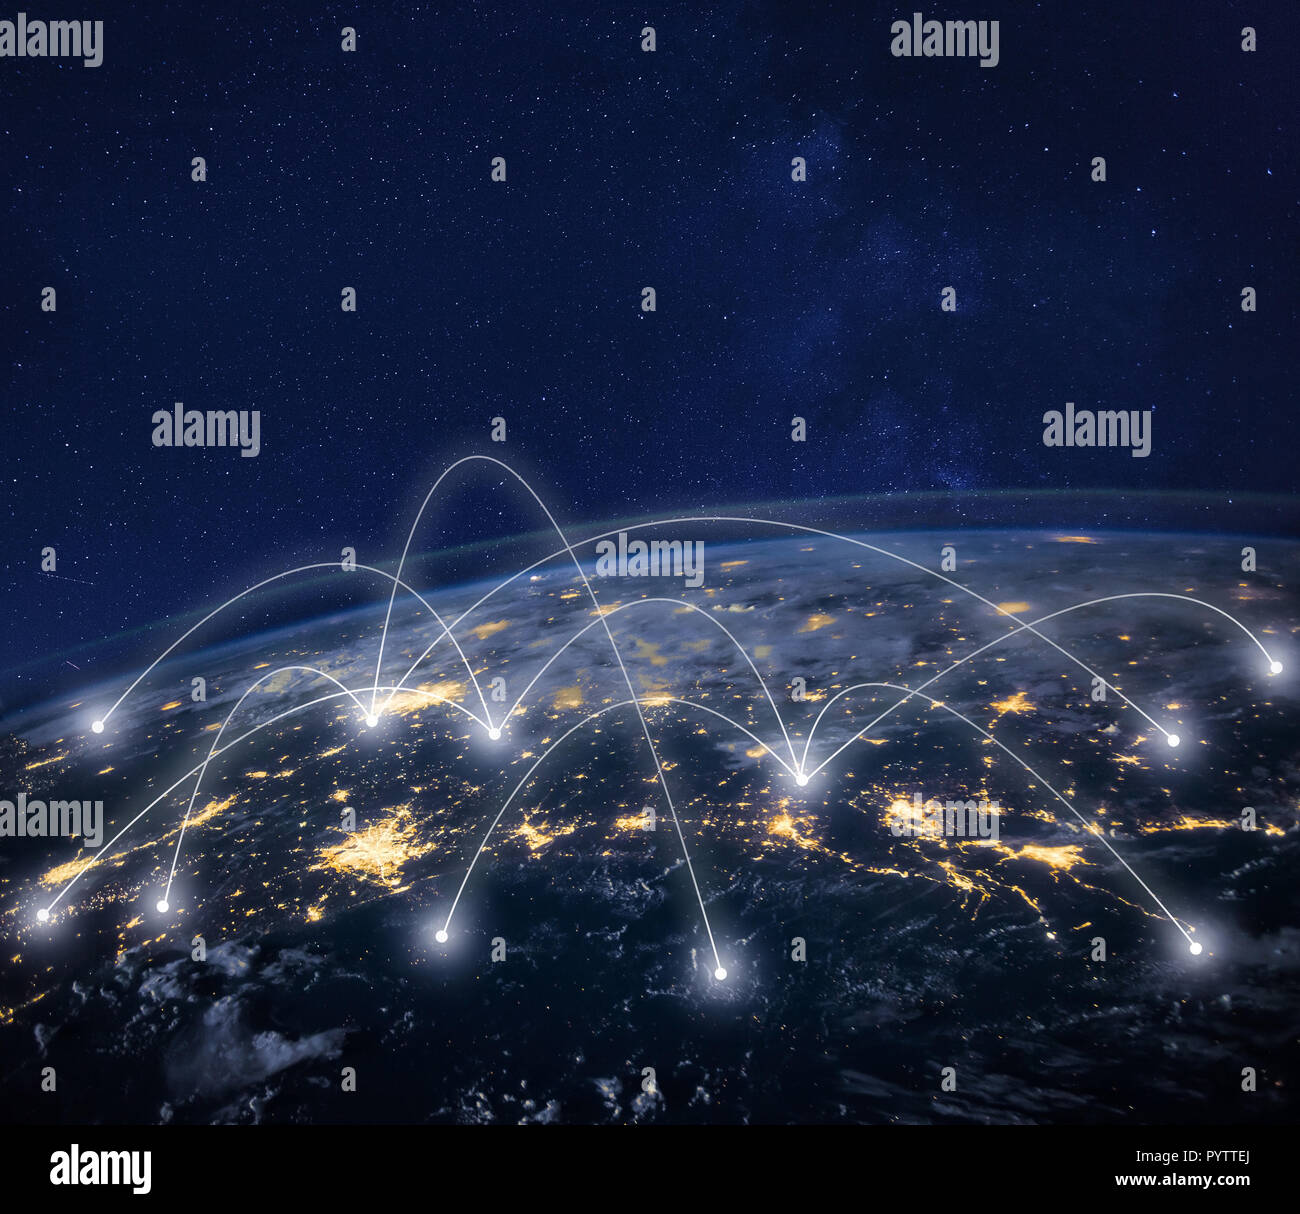 network connection technology, global business communication, planet image from NASA - Stock Image